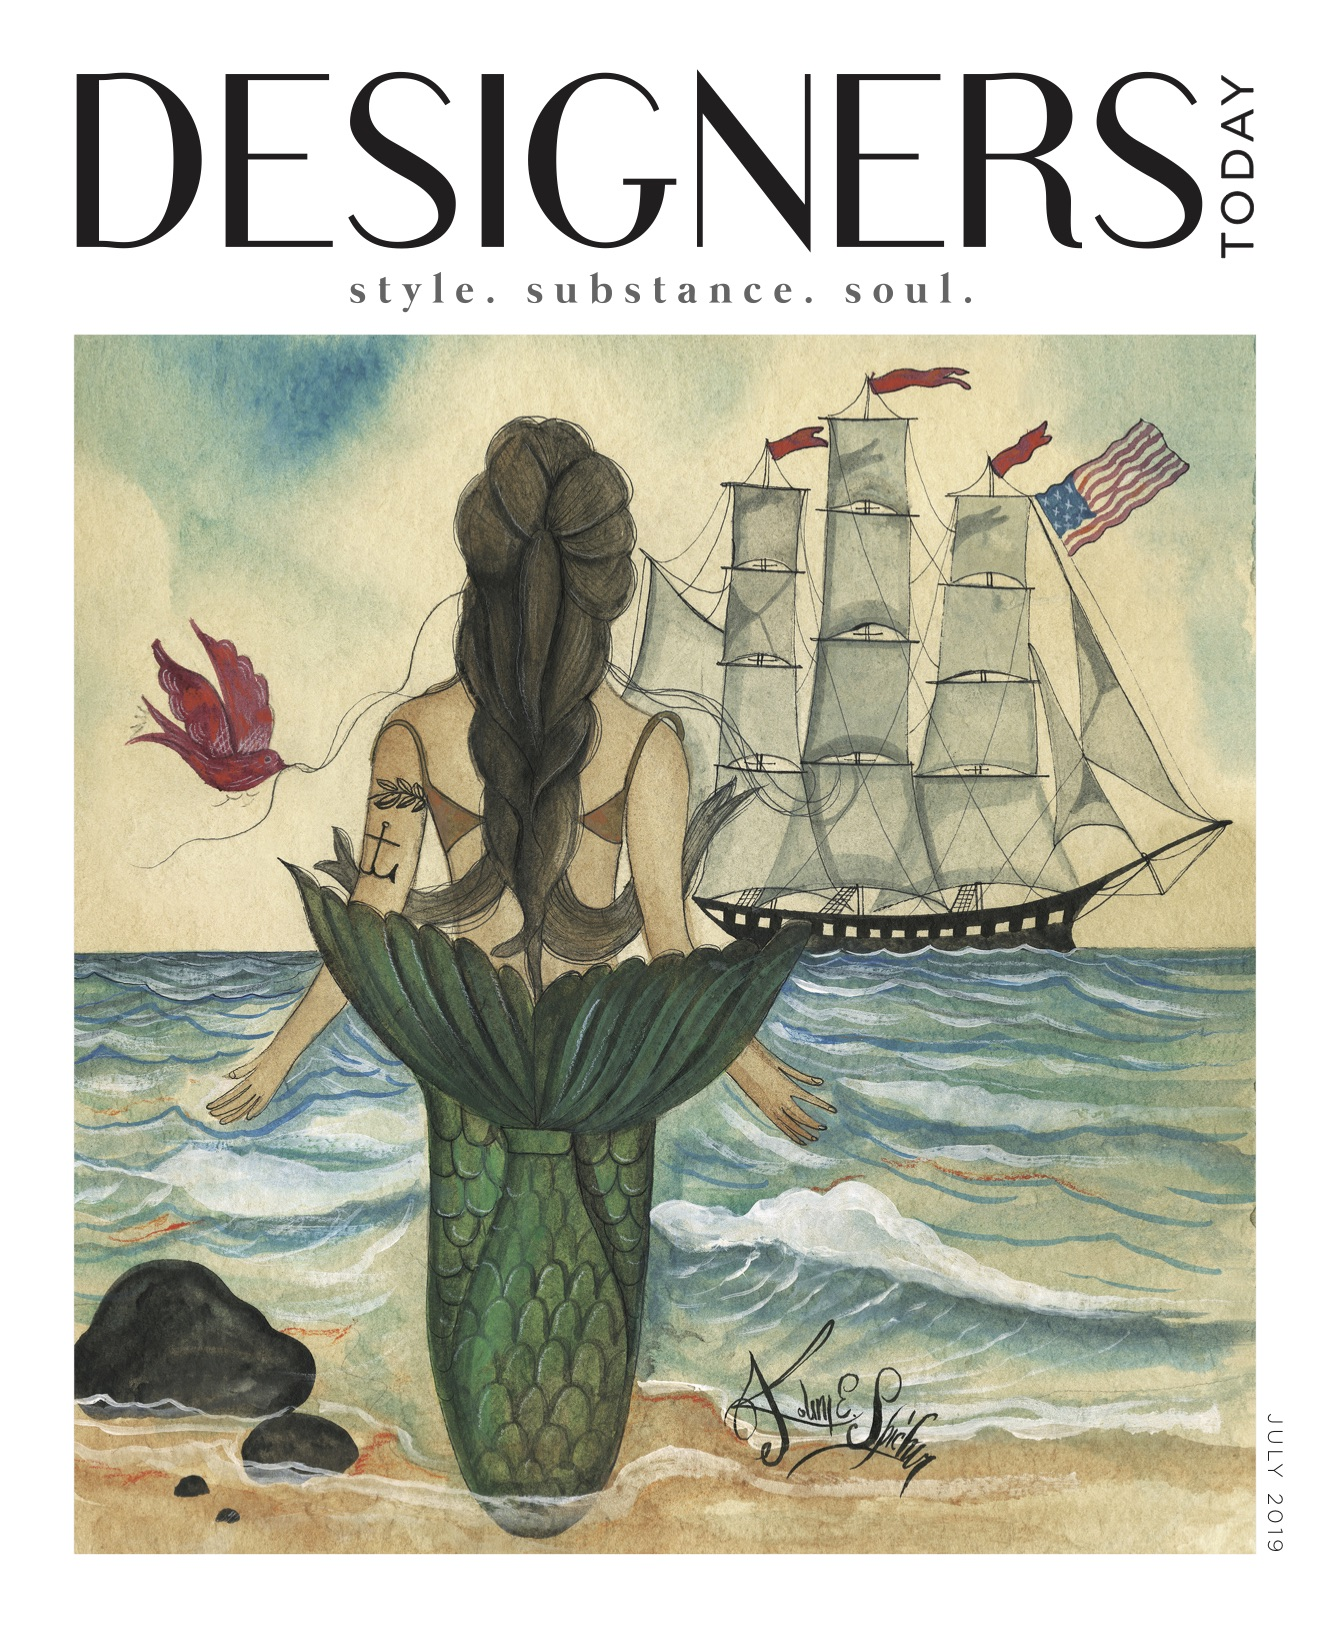 Nancy Ganzekaufer in Designers Today July 2019